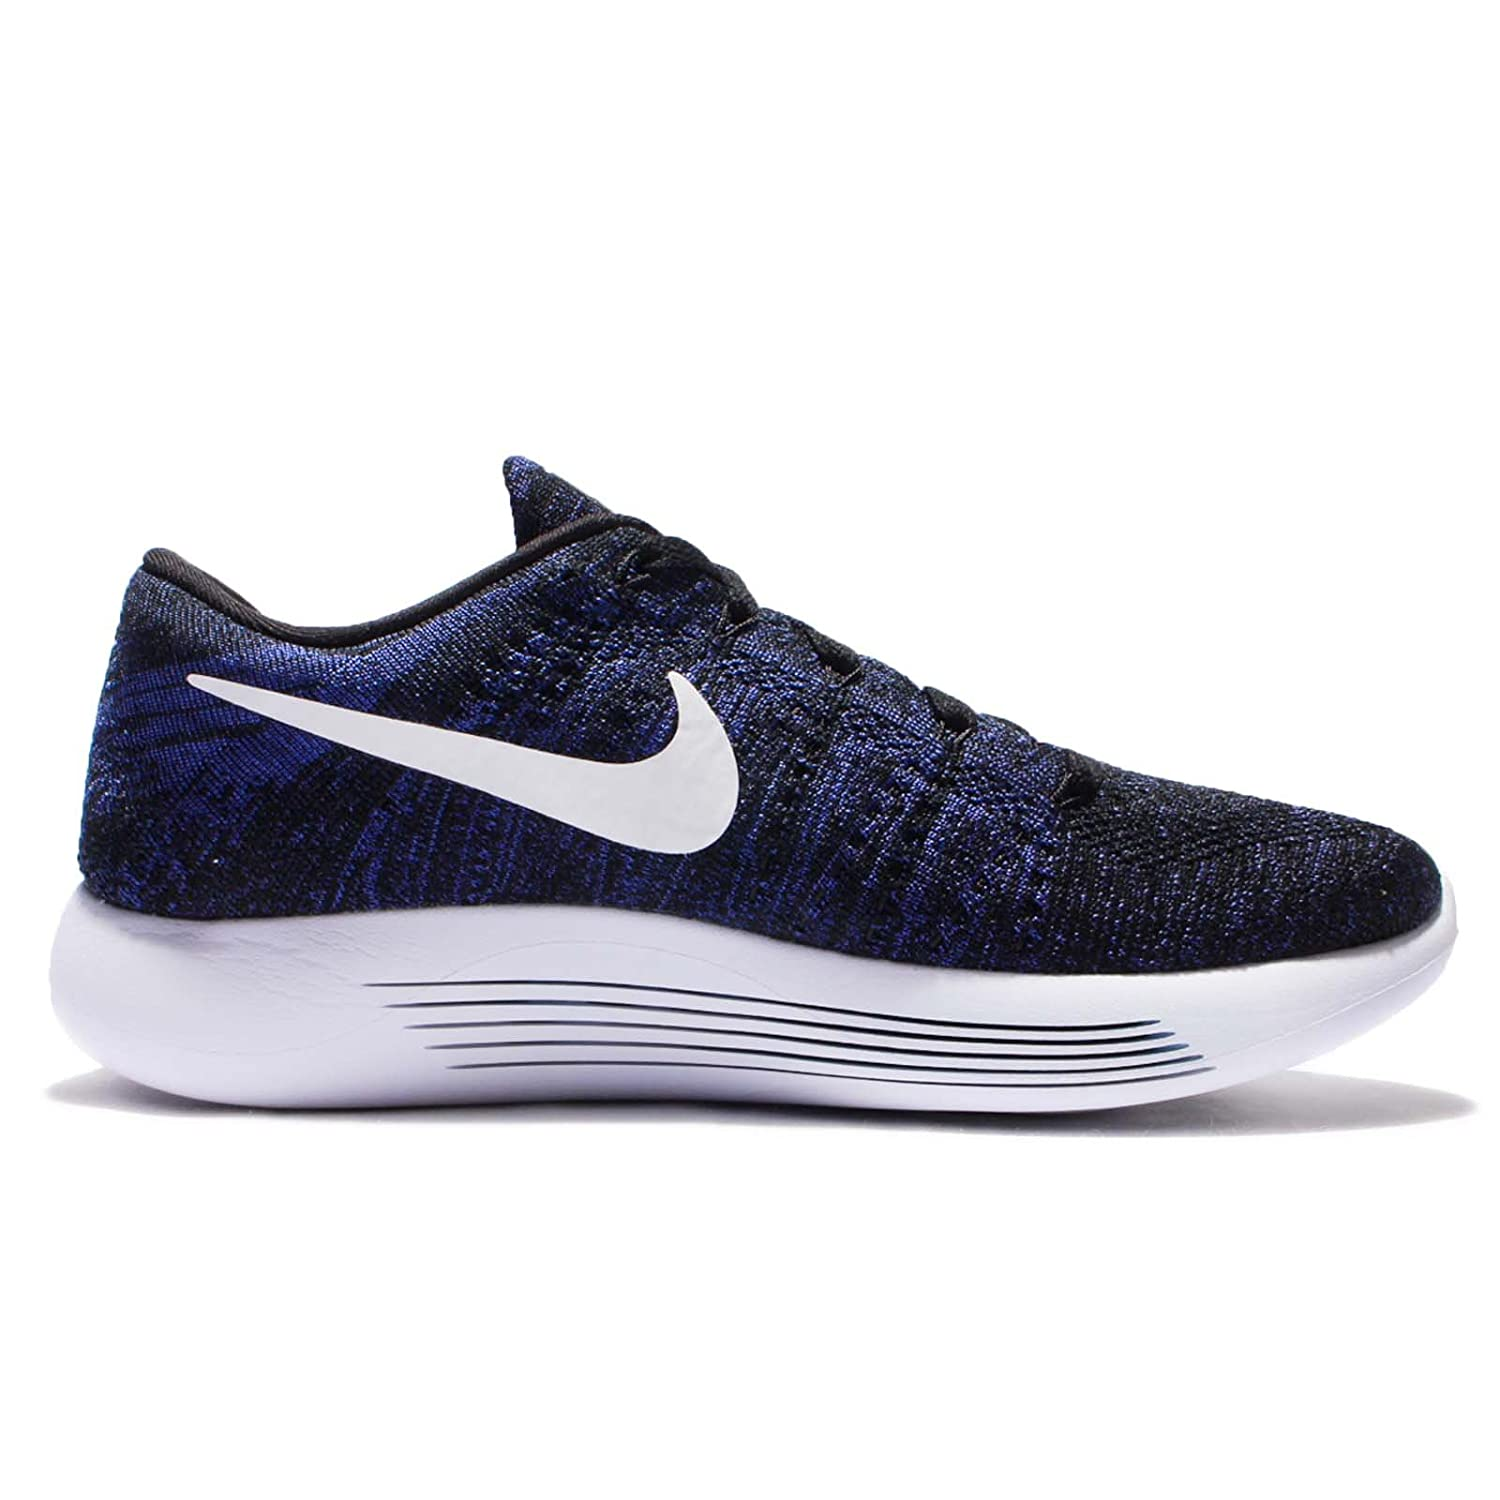 NIKE Women's Lunarepic Low Flyknit Running Shoes B0059KVTJ2 7 M US|Black/White/Dark Purple Dust